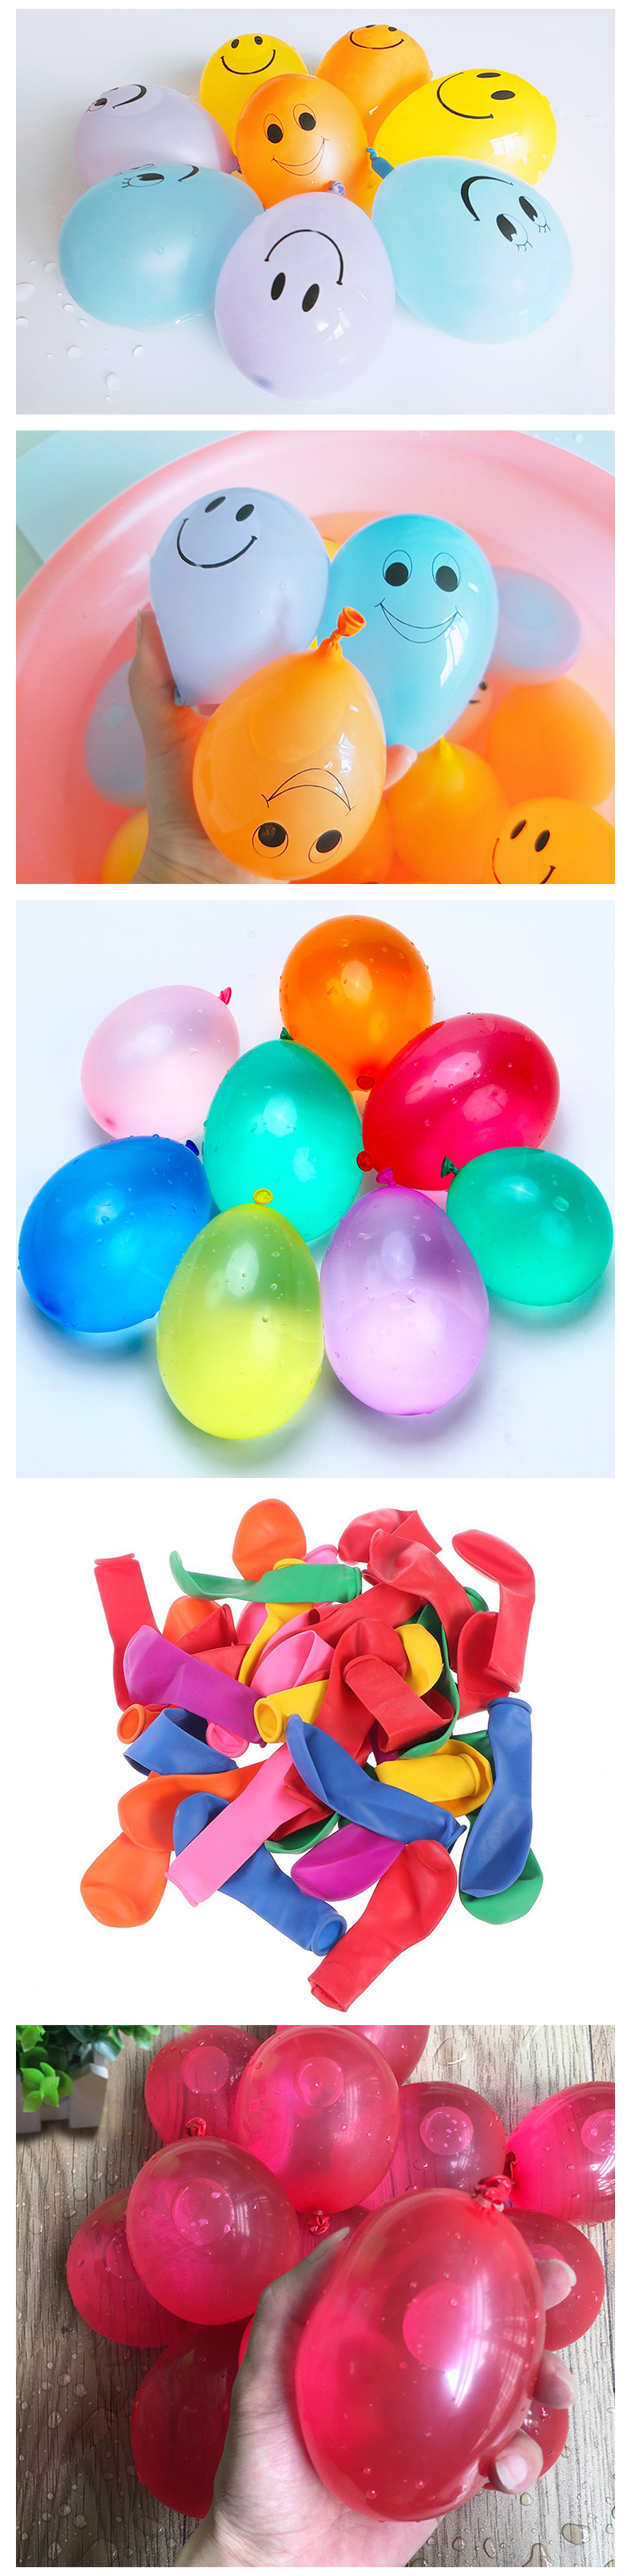 High quality self sealing 111pcs 3 bunch funny water balloon for kids game